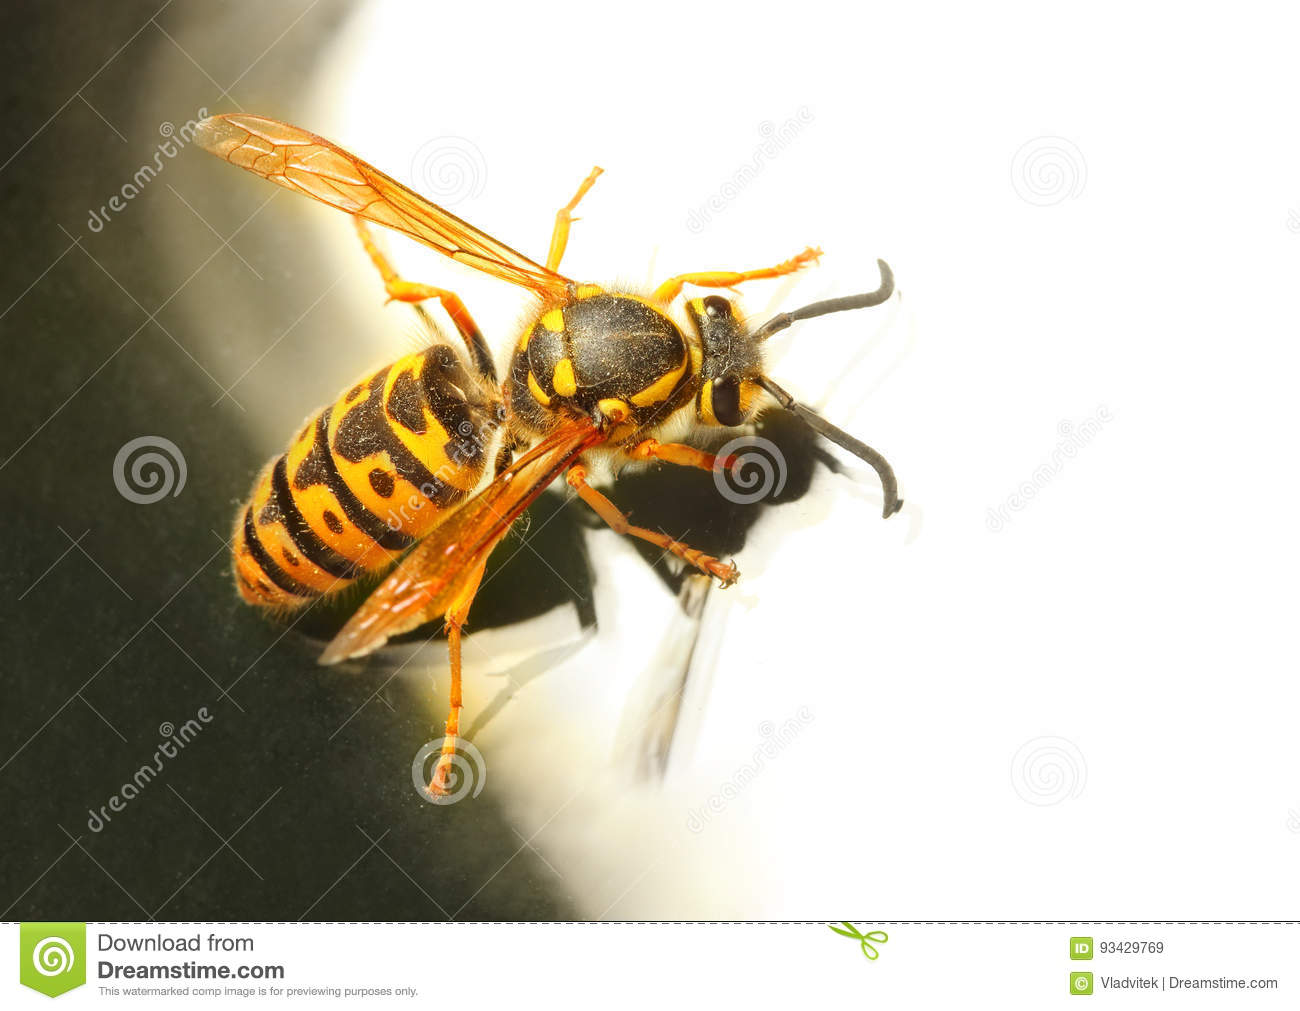 Download The Wasp. stock image. Image of blue, danger, insect - 93429769